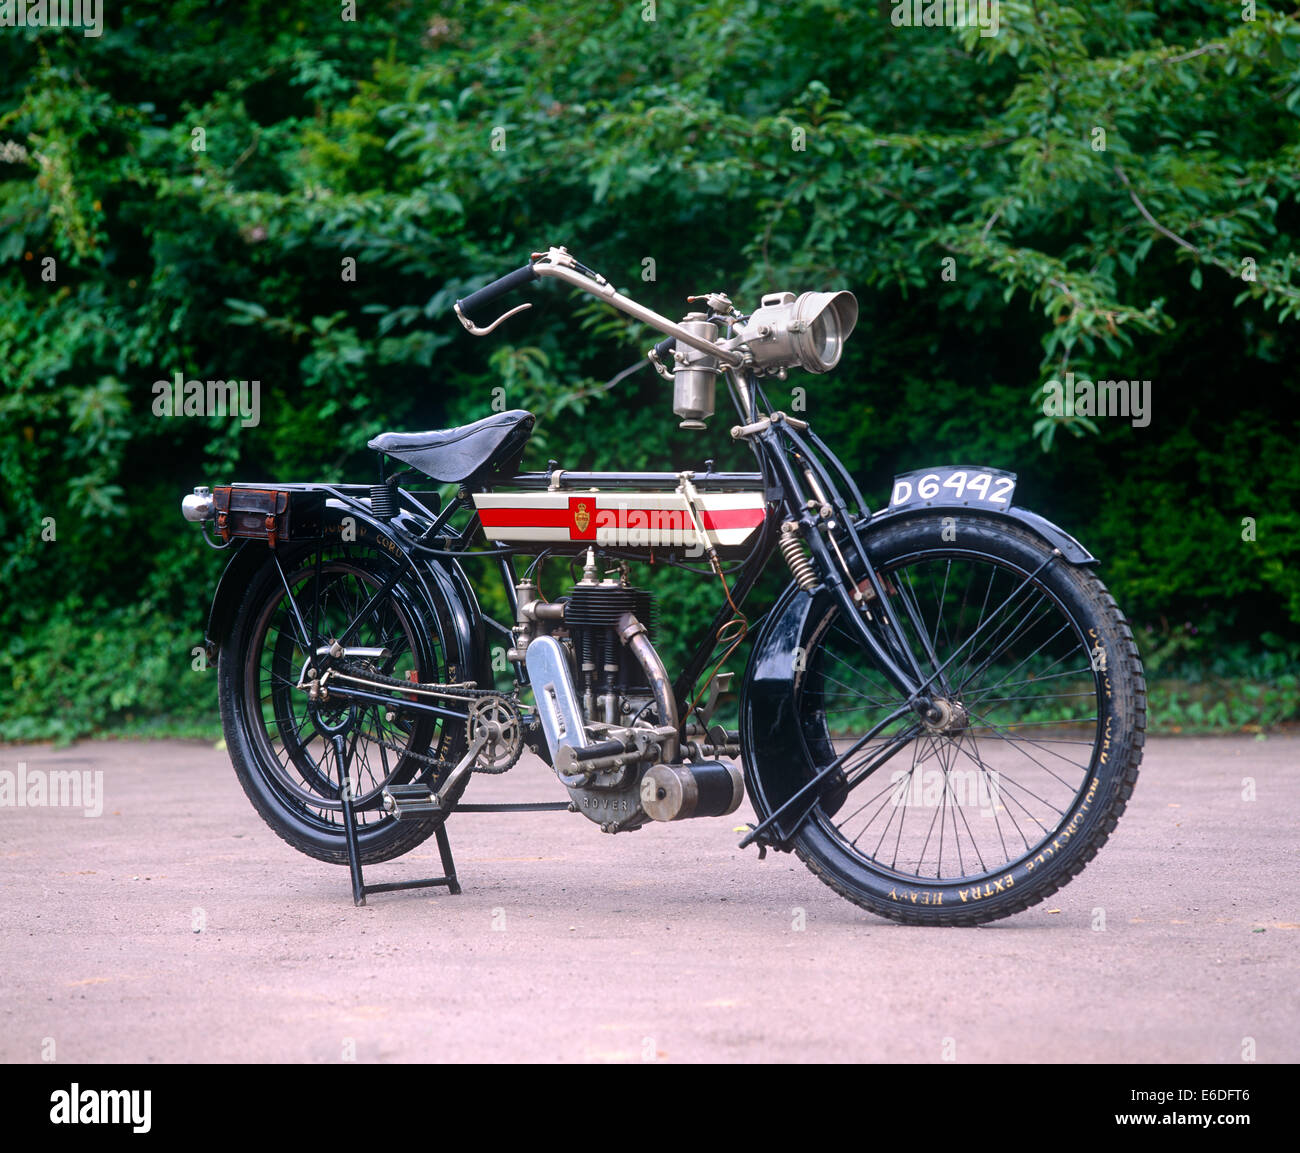 Rover Imperial motorbike - Stock Image